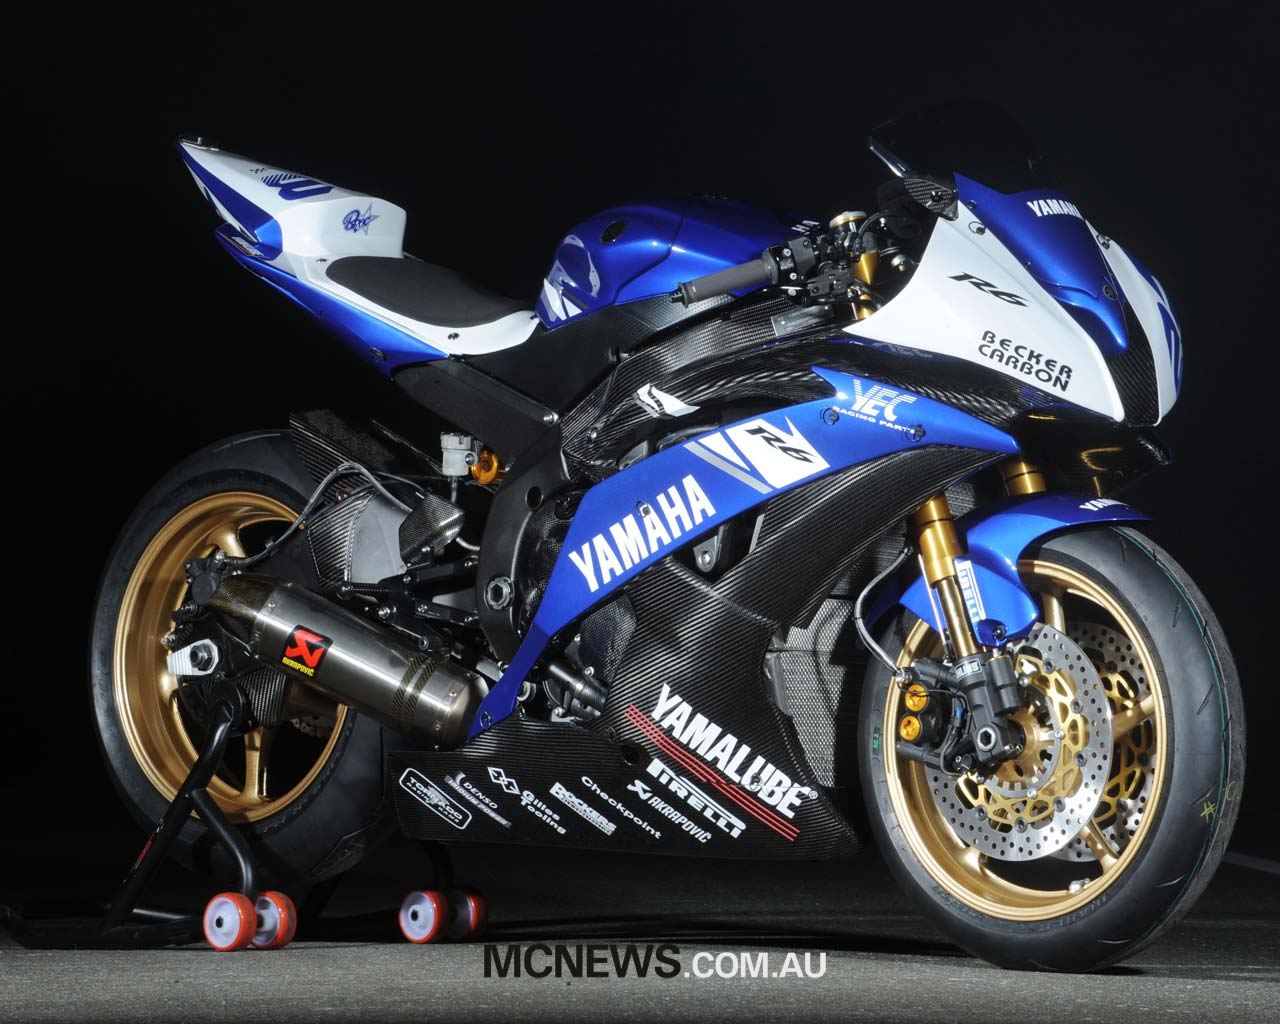 Yamaha R6 Wallpaper 16897 Hd Wallpapers in Bikes   Imagescicom 1280x1024